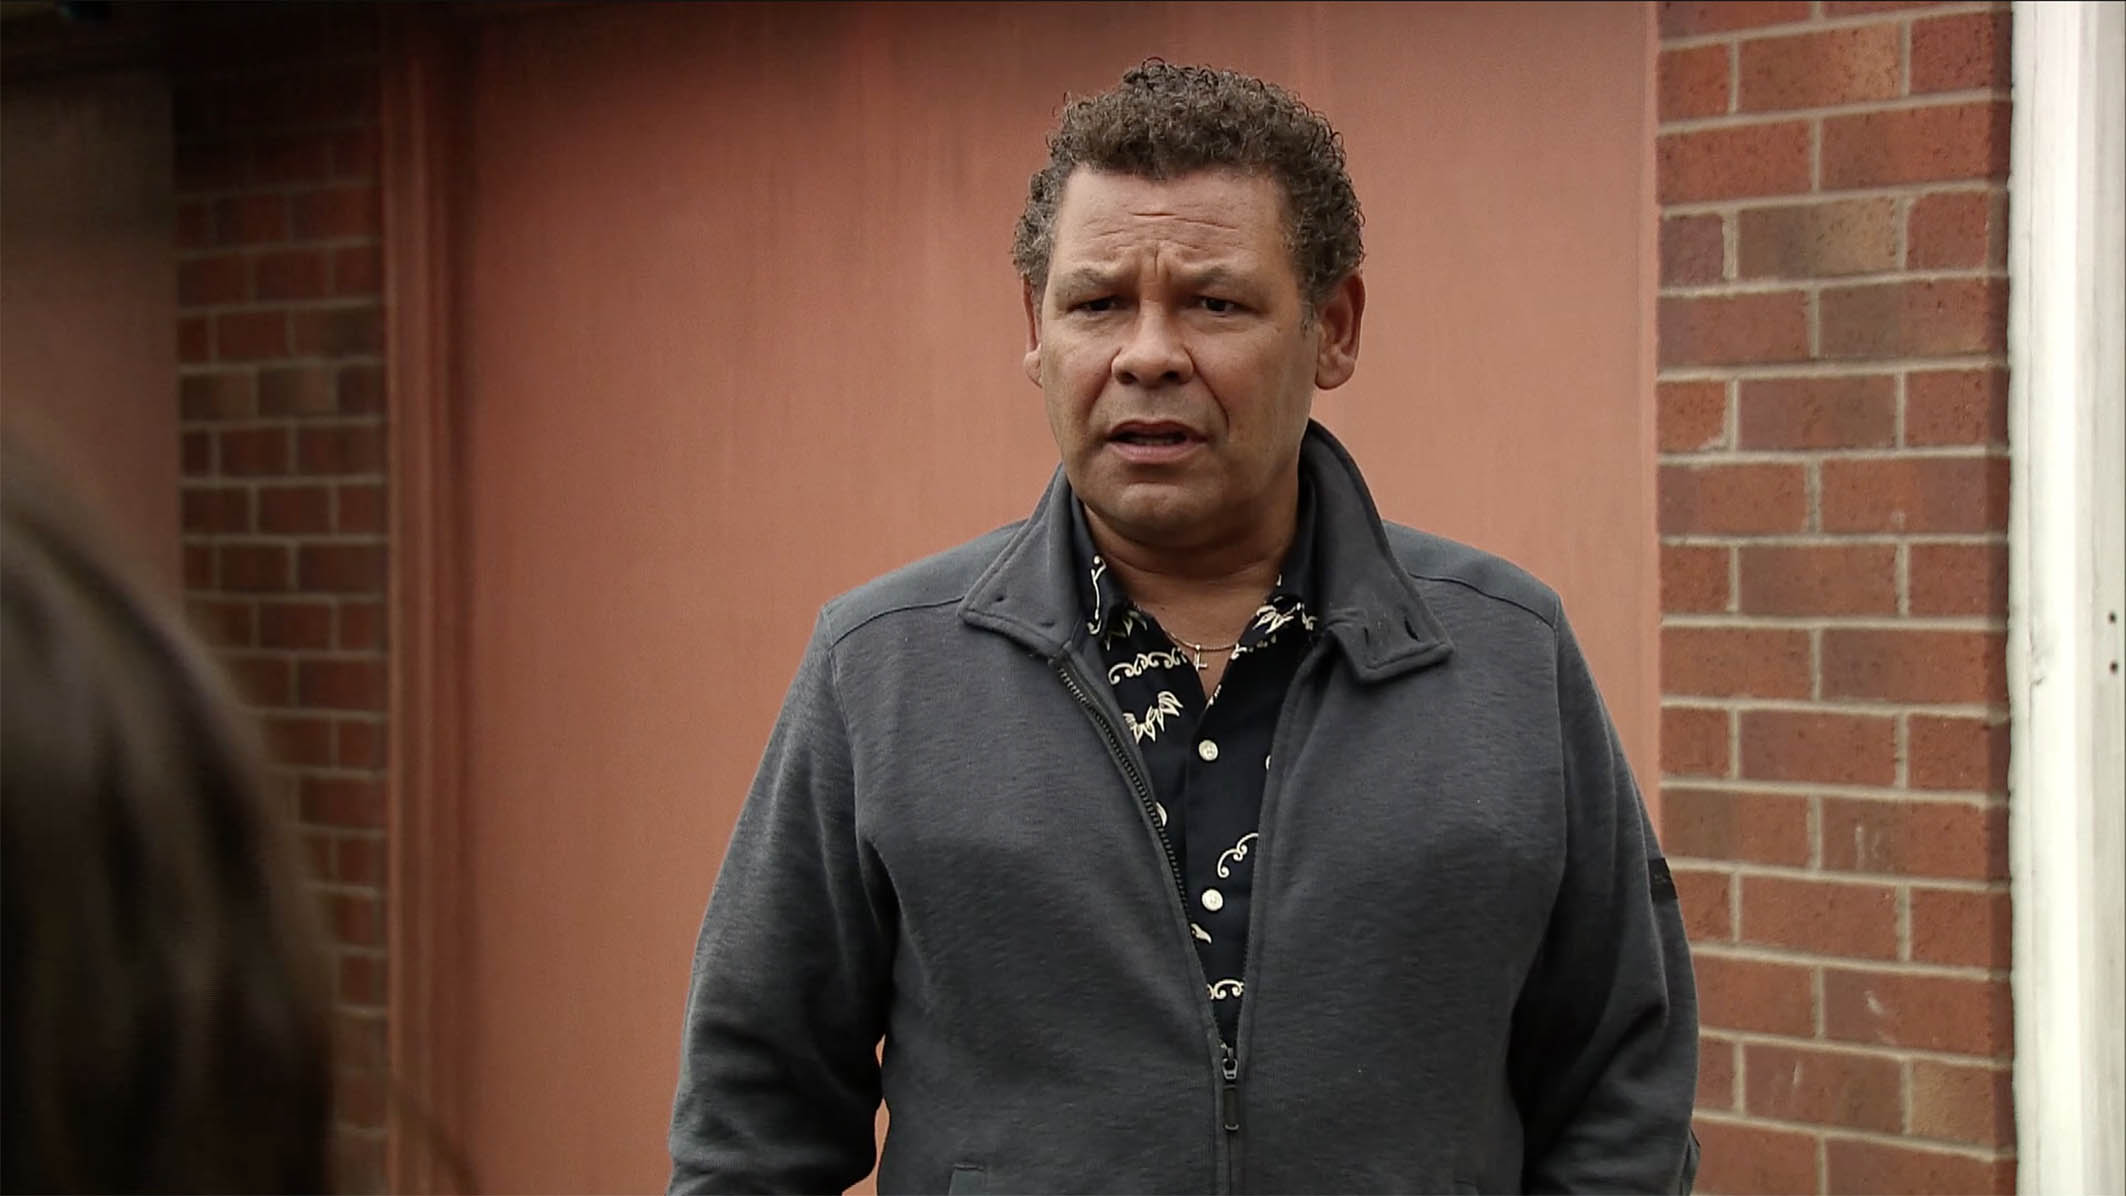 FROM ITV STRICT EMBARGO -TV Listings Magazines & websites Tuesday 4 August 2015, Newspapers Saturday 8 August 2015 Coronation Street - Ep 8708 Friday 14 August 2015 - 2nd Lloyd Mullaney [CRAIG CHARLES] catches Andrea Beckett [HAYLEY TAMADDON] as she is loading her things into a taxi and is stunned when she tells him that she knows he will never forgive her so she has to go. Will Lloyd try and persuade her to stay, or will he let her slip away? Picture contact: david.crook@itv.com on 0161 952 6214 This photograph is (C) ITV Plc and can only be reproduced for editorial purposes directly in connection with the programme or event mentioned above, or ITV plc. Once made available by ITV plc Picture Desk, this photograph can be reproduced once only up until the transmission [TX] date and no reproduction fee will be charged. Any subsequent usage may incur a fee. This photograph must not be manipulated [excluding basic cropping] in a manner which alters the visual appearance of the person photographed deemed detrimental or inappropriate by ITV plc Picture Desk. This photograph must not be syndicated to any other company, publication or website, or permanently archived, without the express written permission of ITV Plc Picture Desk. Full Terms and conditions are available on the website www.itvpictures.com